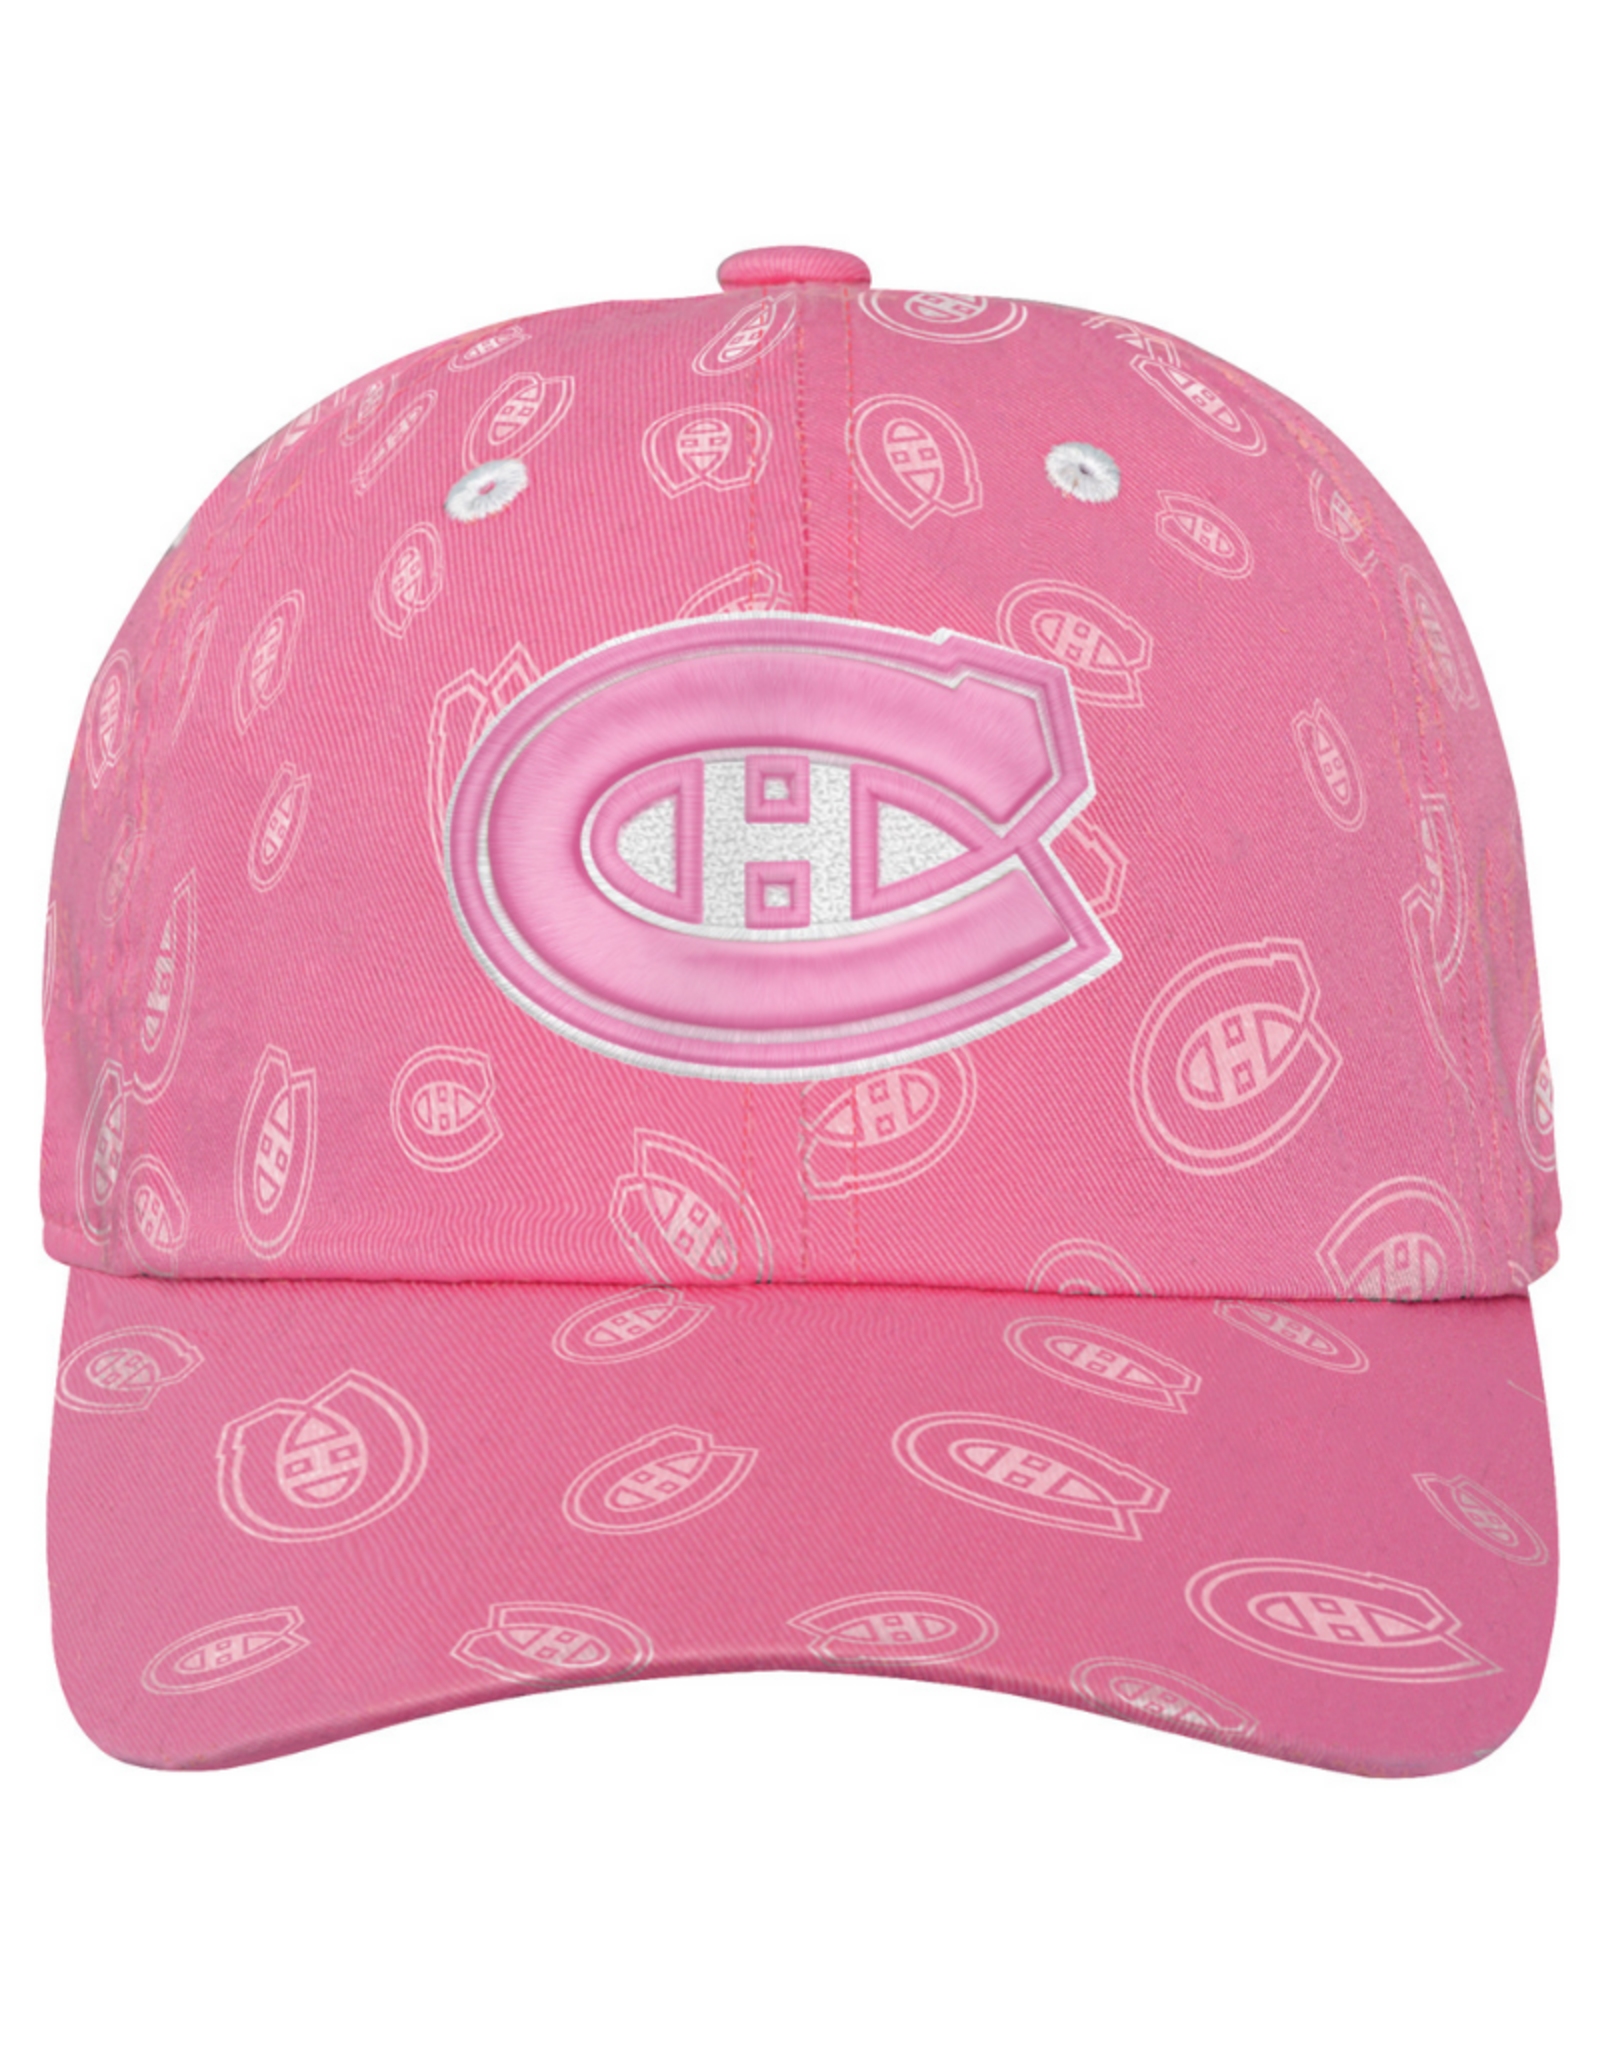 NHL Youth Pink Fashion Hat Montreal Canadiens